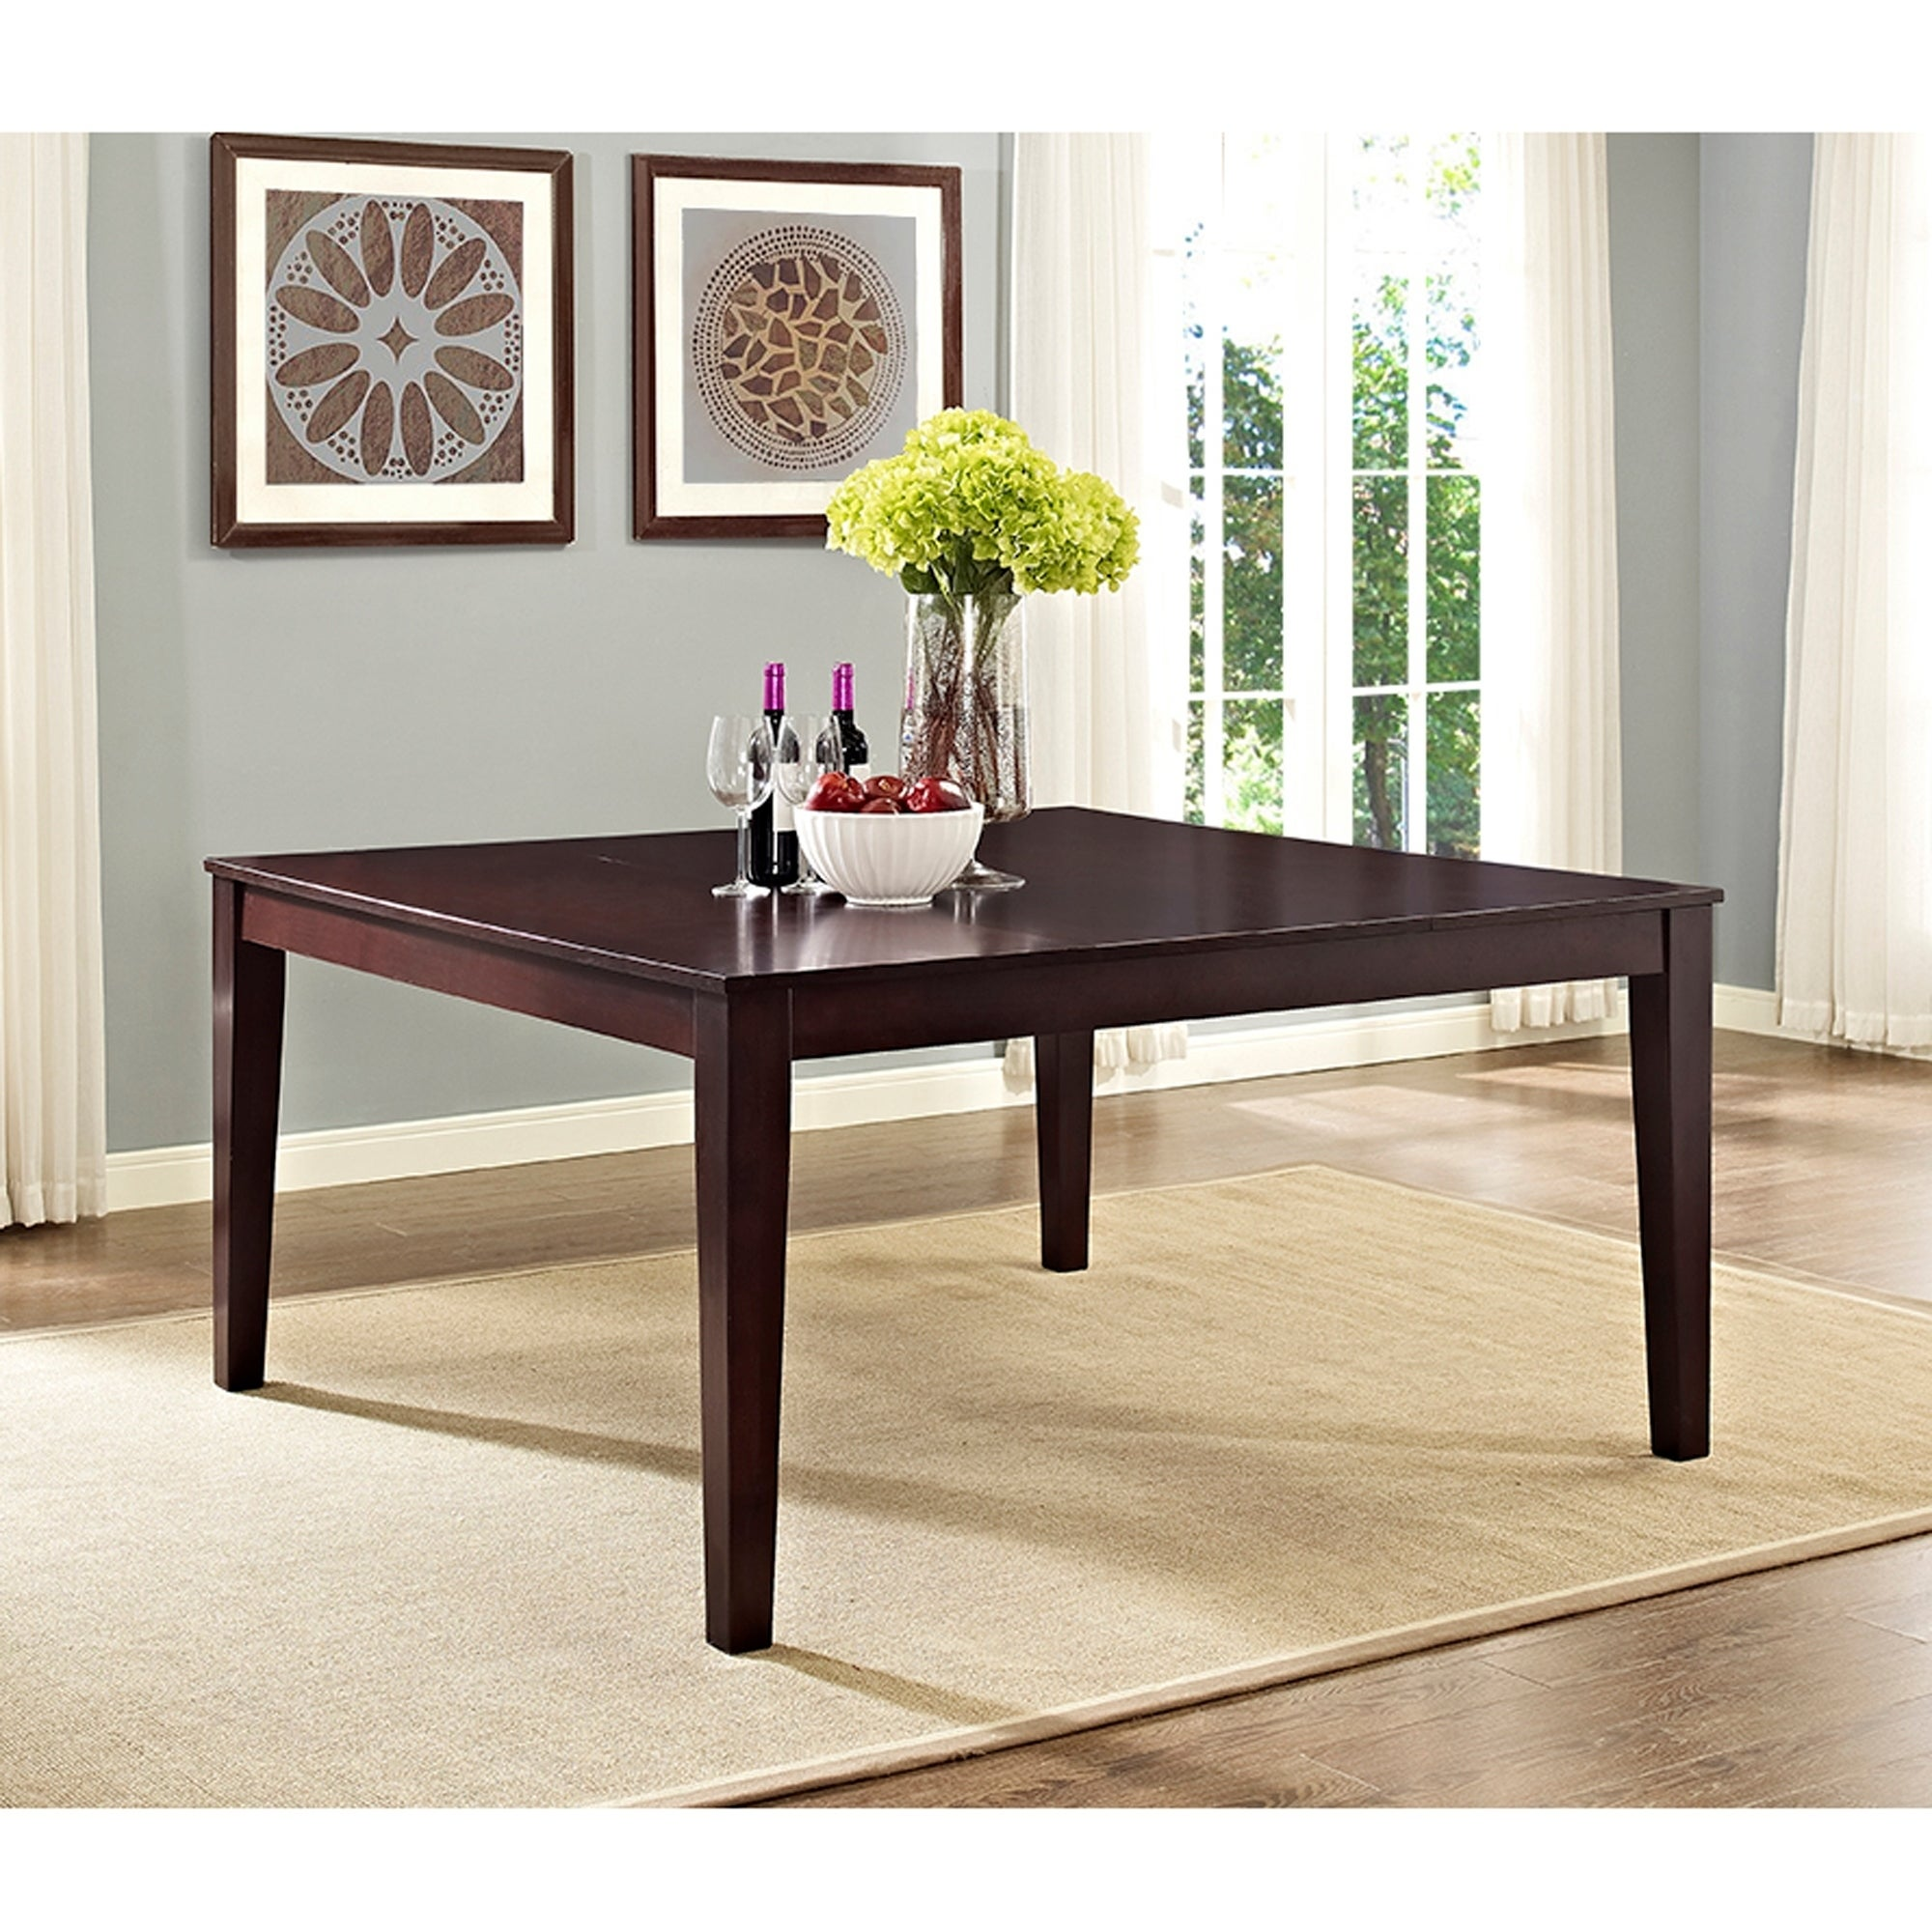 Genial Shop 60 Inch Cappuccino Square Wood Dining Table   On Sale   Free Shipping  Today   Overstock.com   12042125